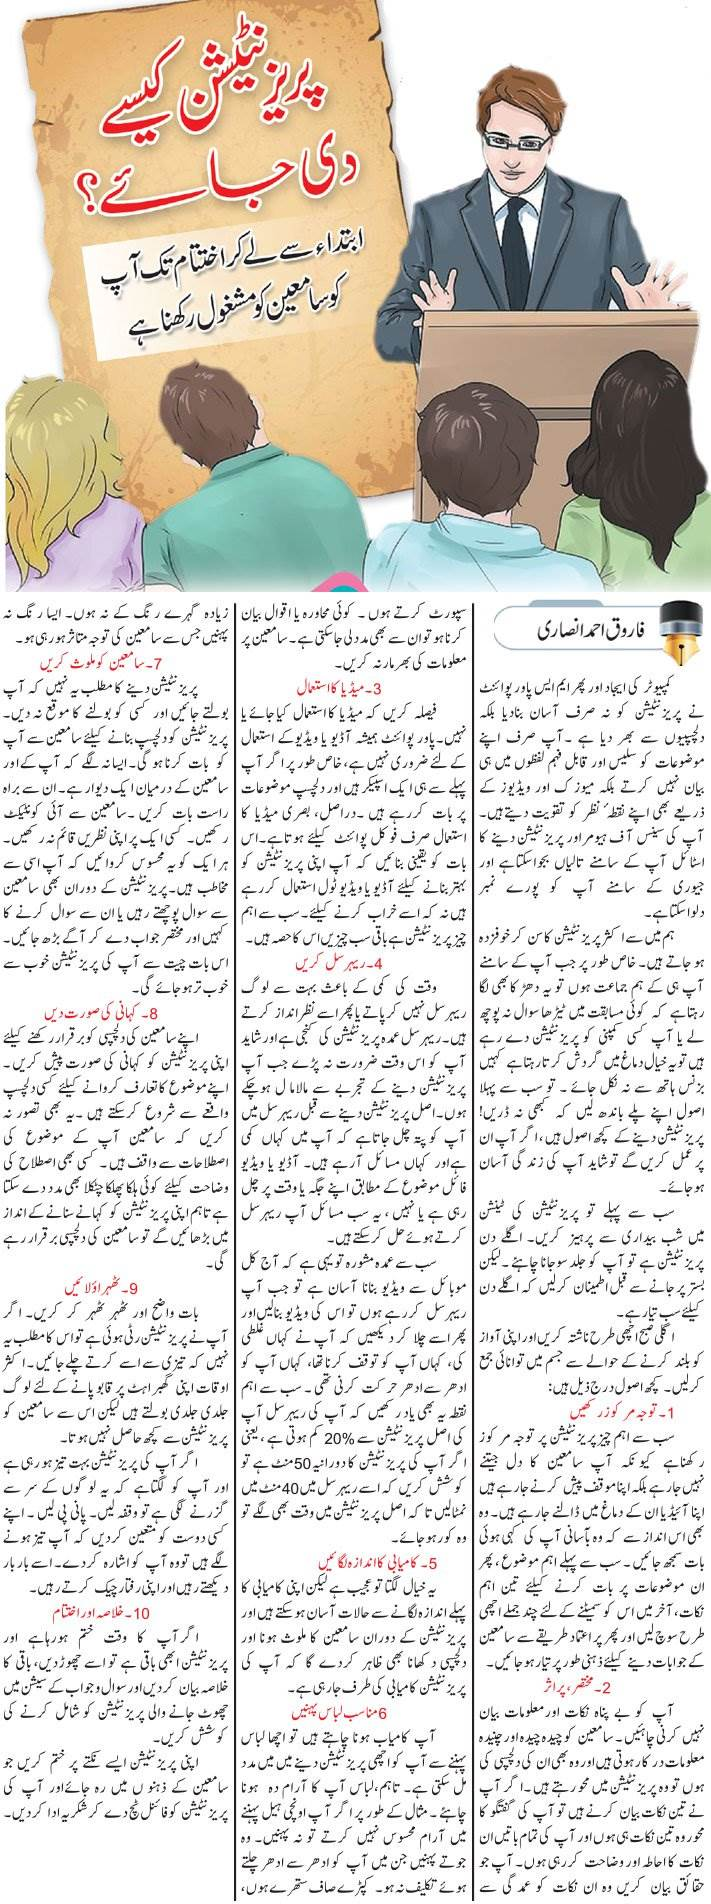 Presentation Tips For Students & Professionals in Urdu and English